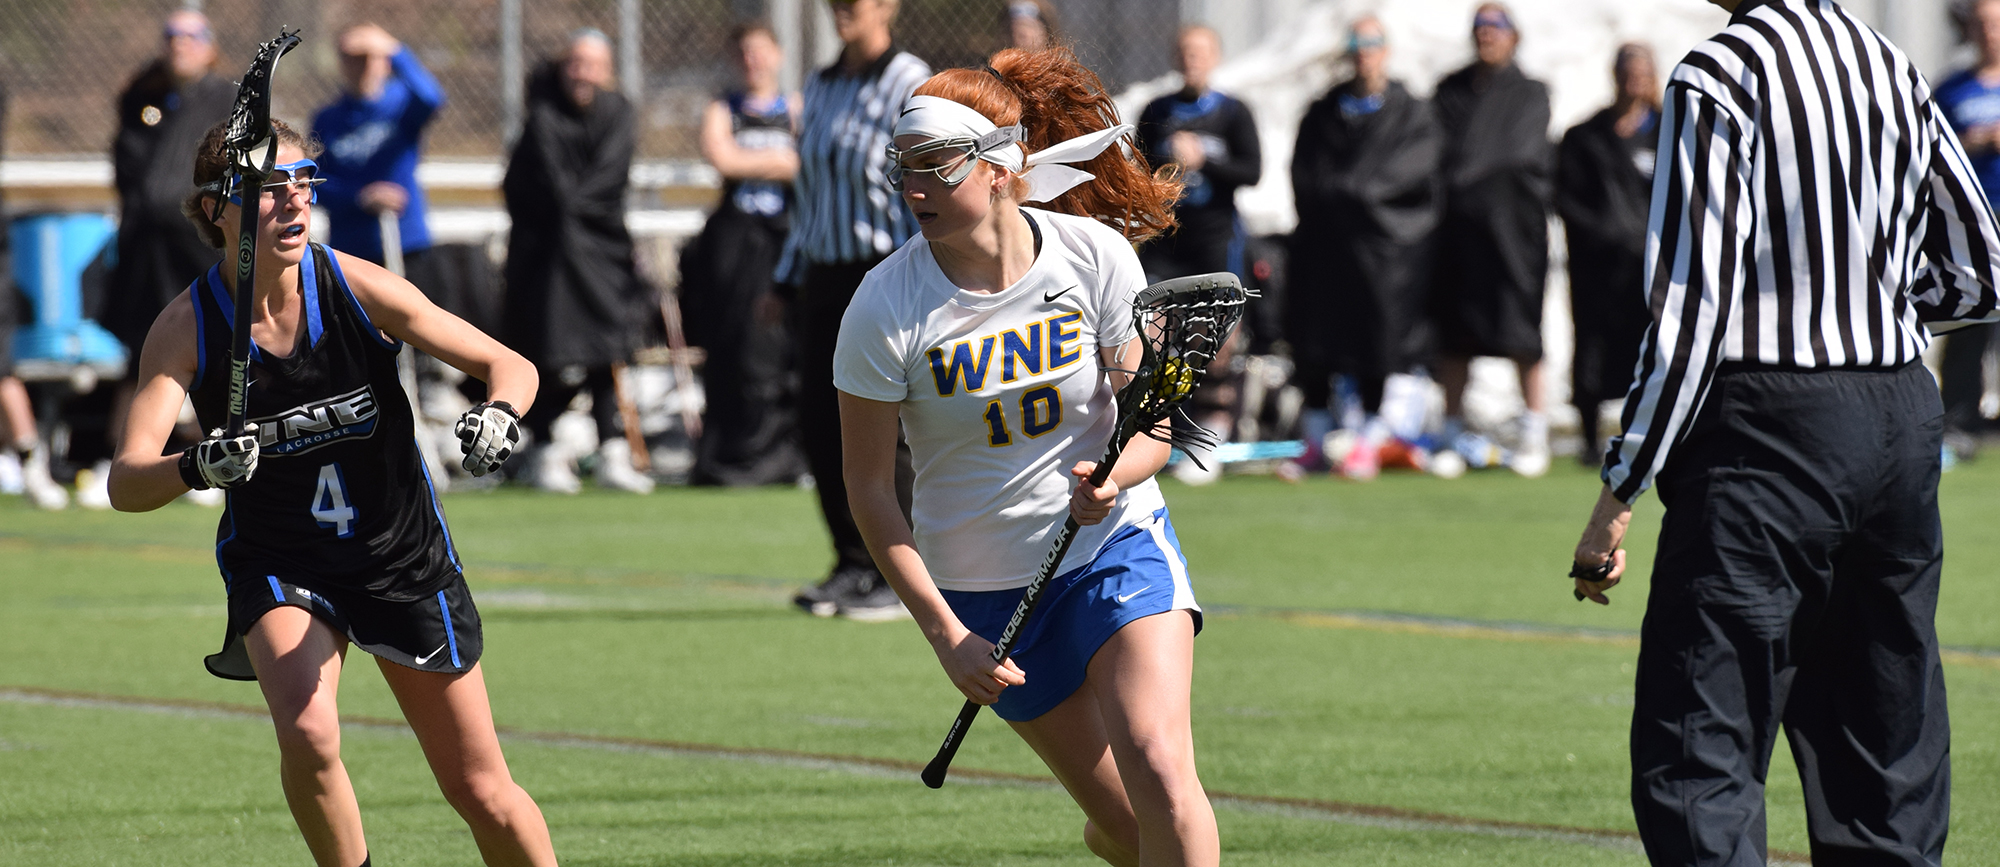 Fast Start, Strong Finish Help Golden Bears Register 11-7 Win at Curry